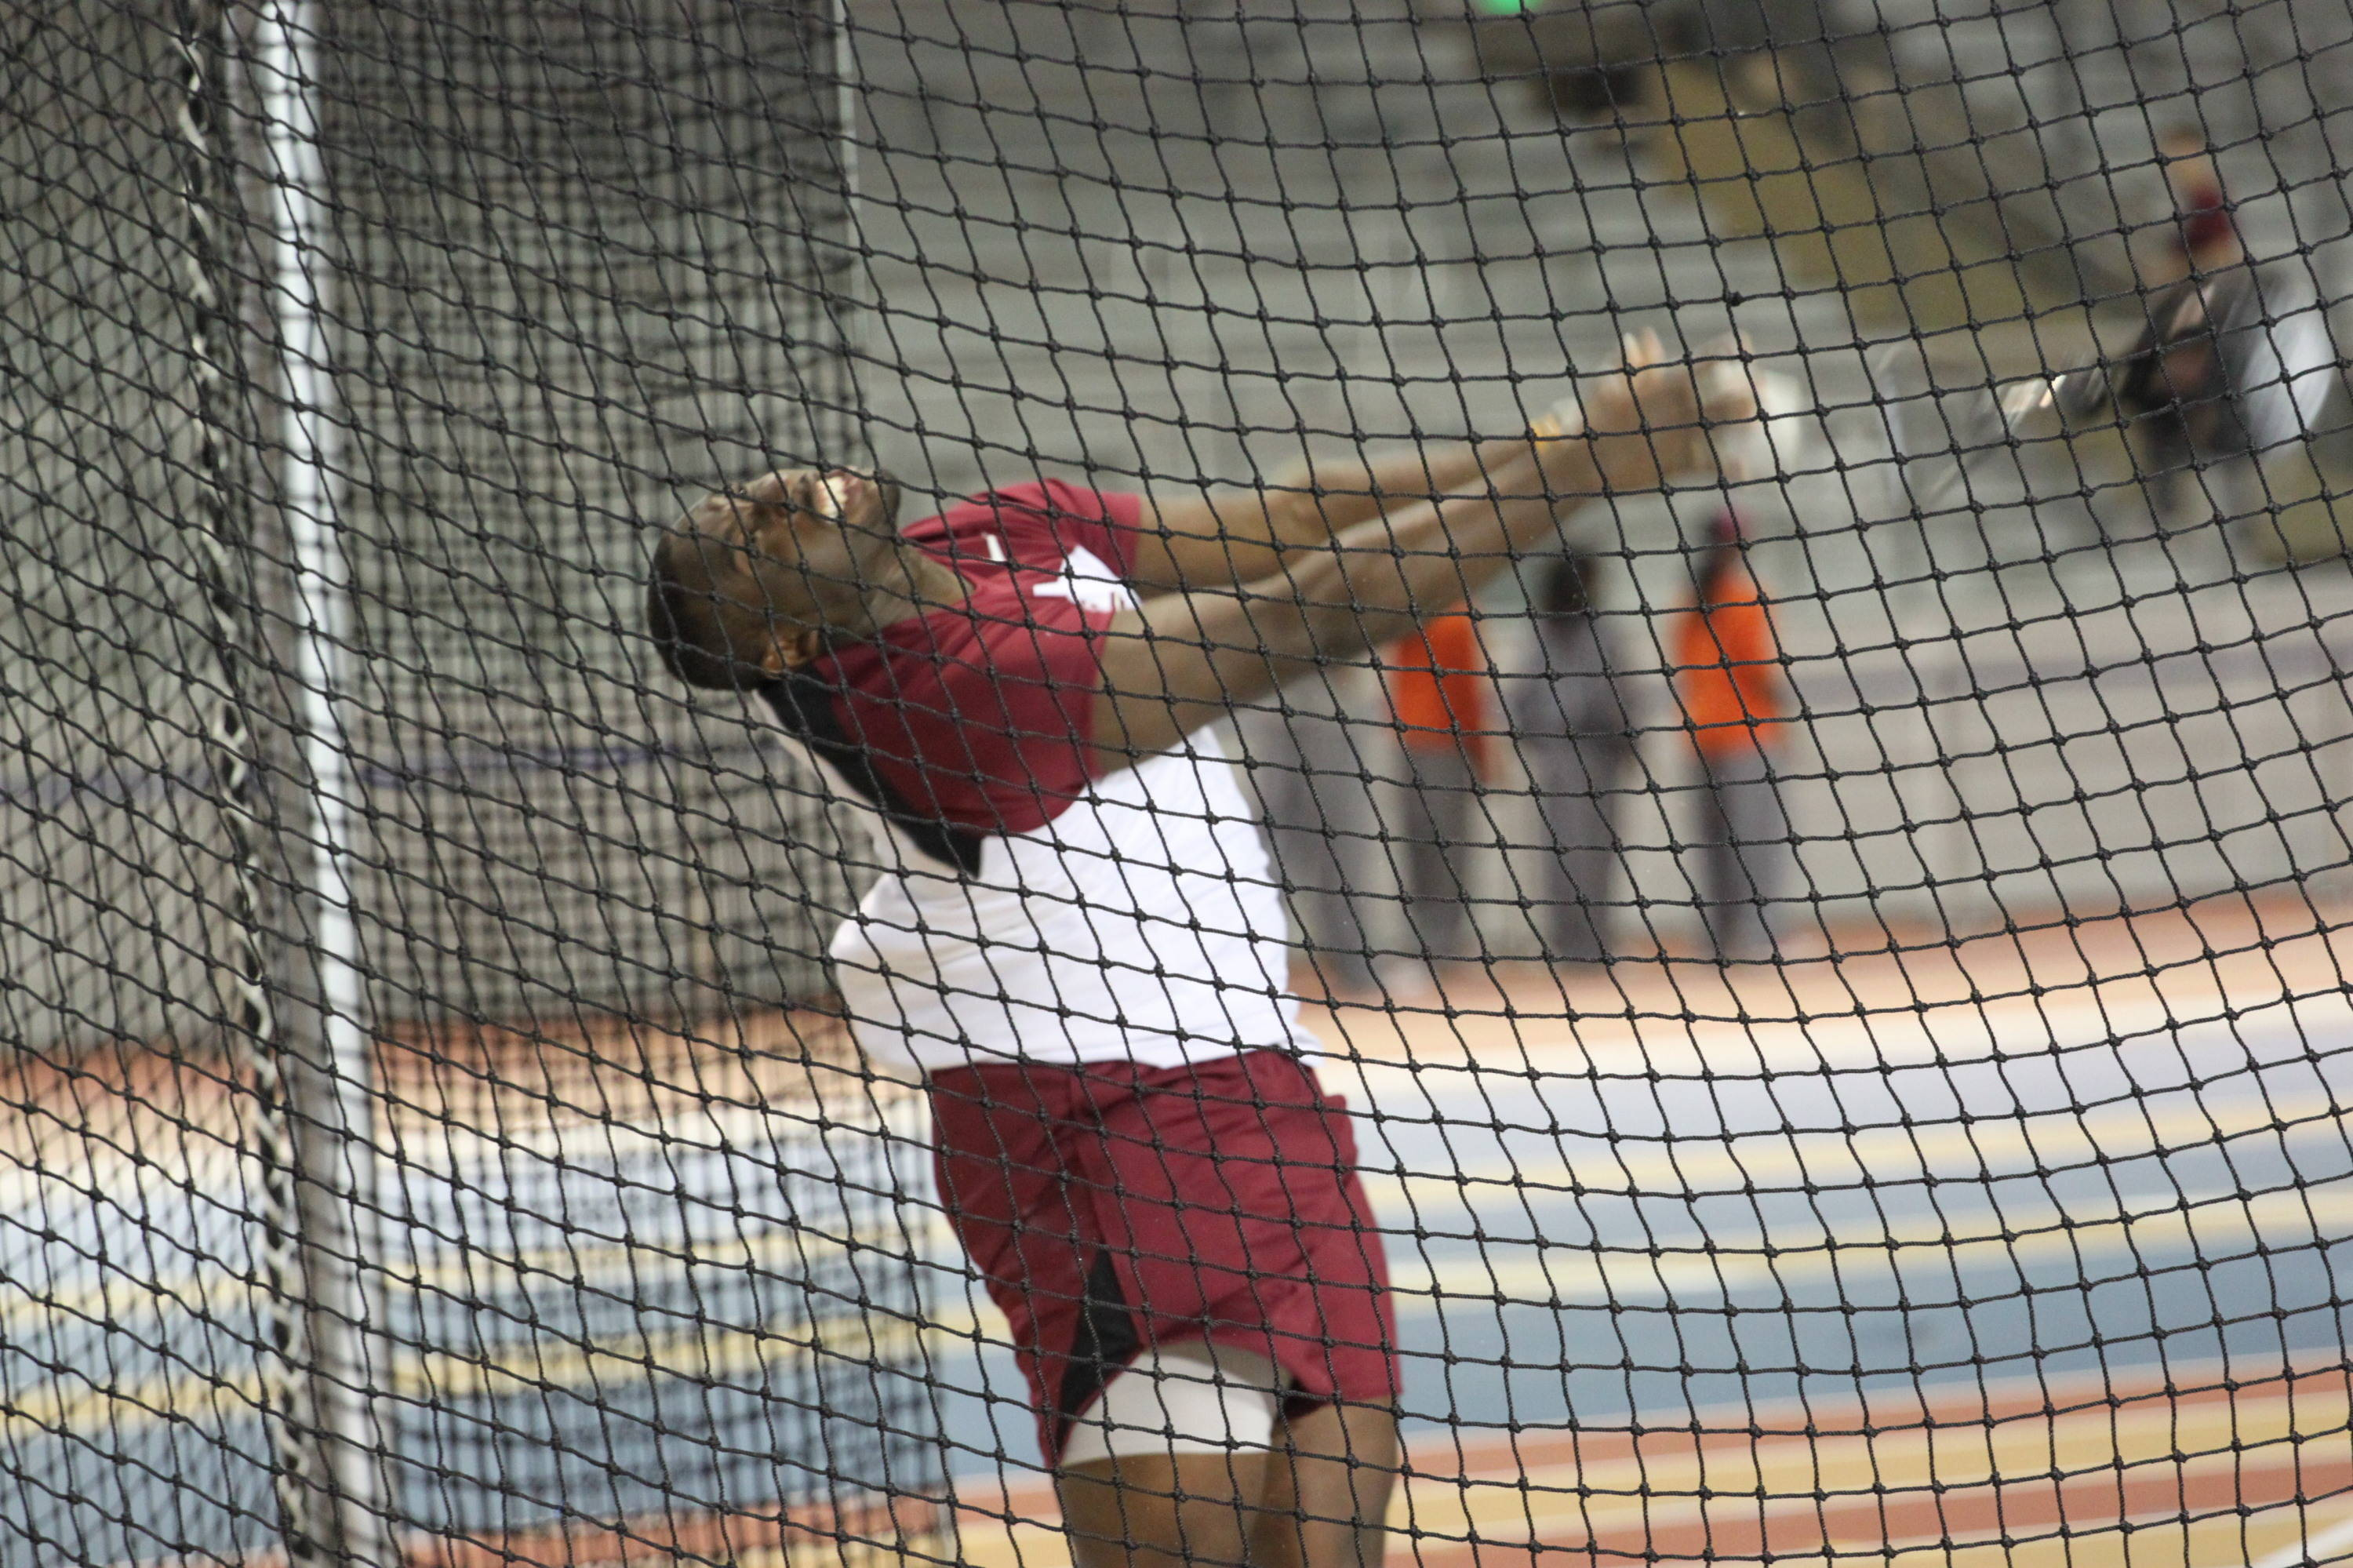 Markindey Sineus competed in Friday night's weight throw and had an impressive sixth-place finish with a throw of 17.59m (57-8 1/2) in his collegiate debut.